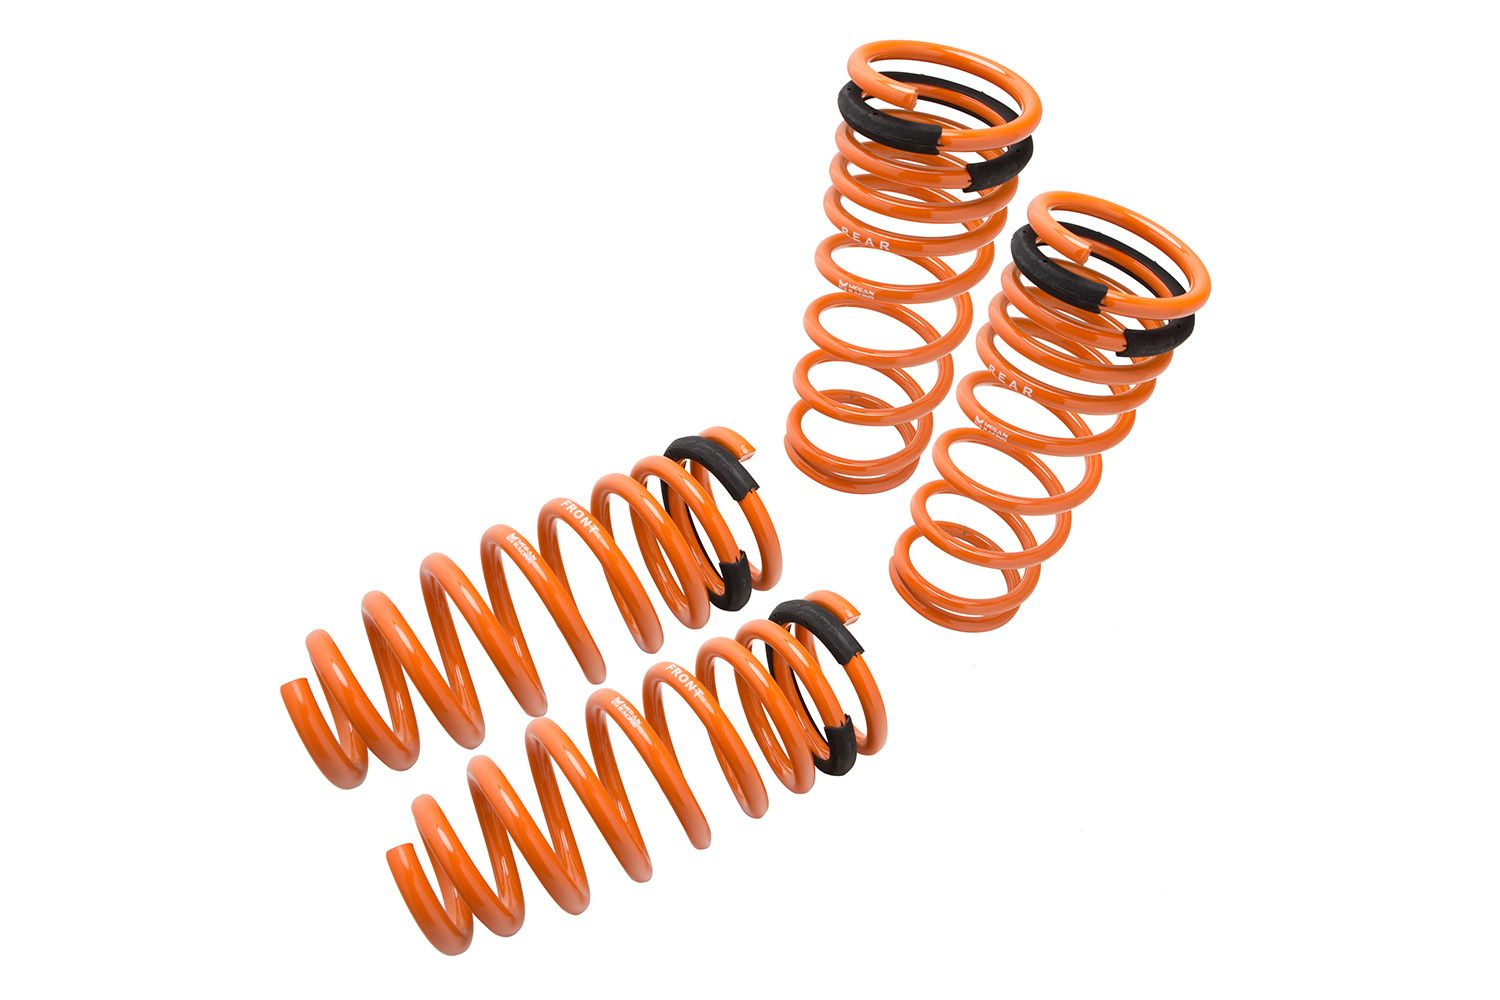 Megan Racing - Lowering Springs - 08-12 Accord V6 / 09-14 TSX - MR-LS-HA08V6